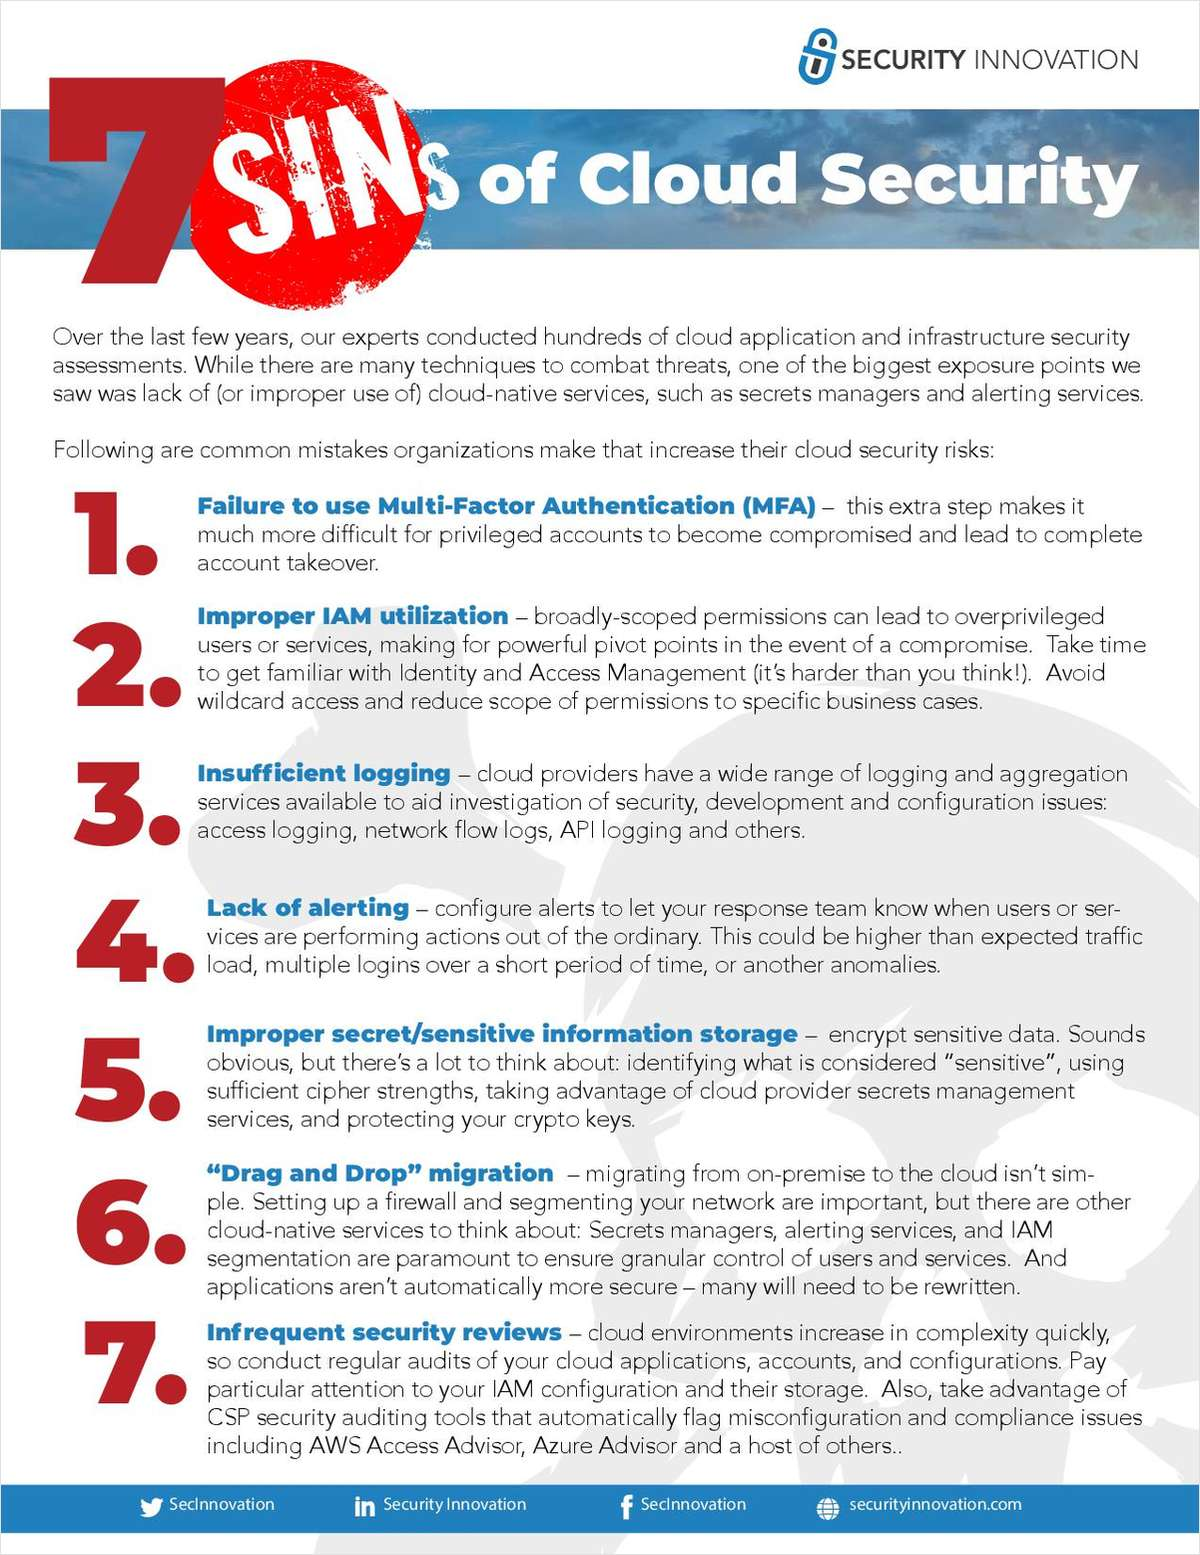 The 7 Sins of Cloud Security